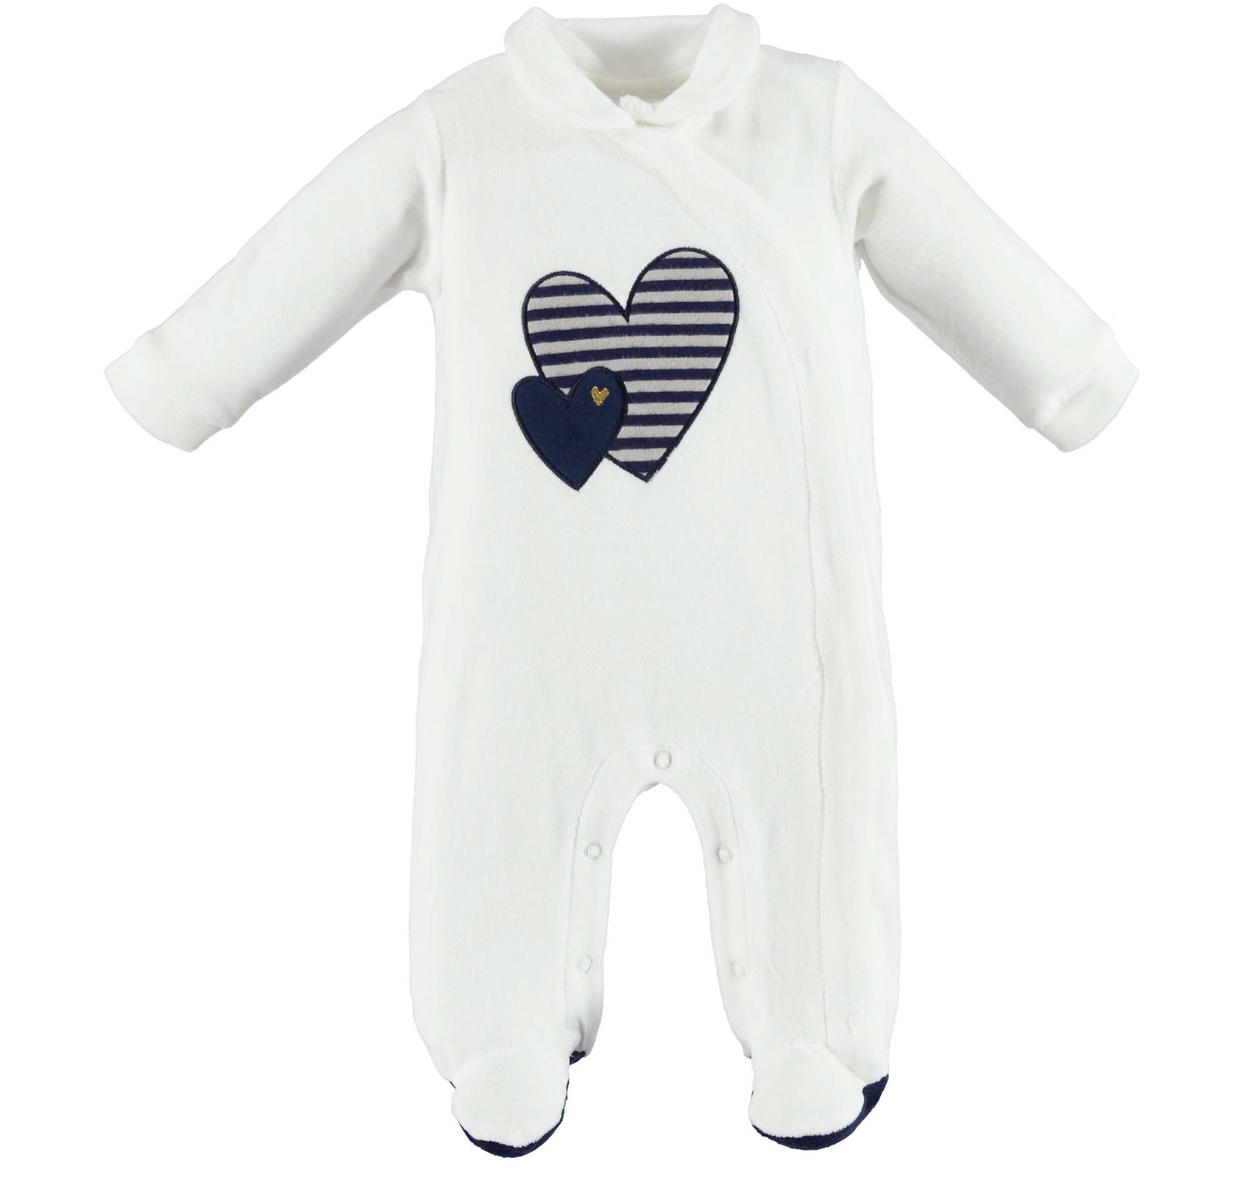 00962ea45570 Sweet Minibanda romper with hearts for babies from 0 to 24 months PANNA-0112